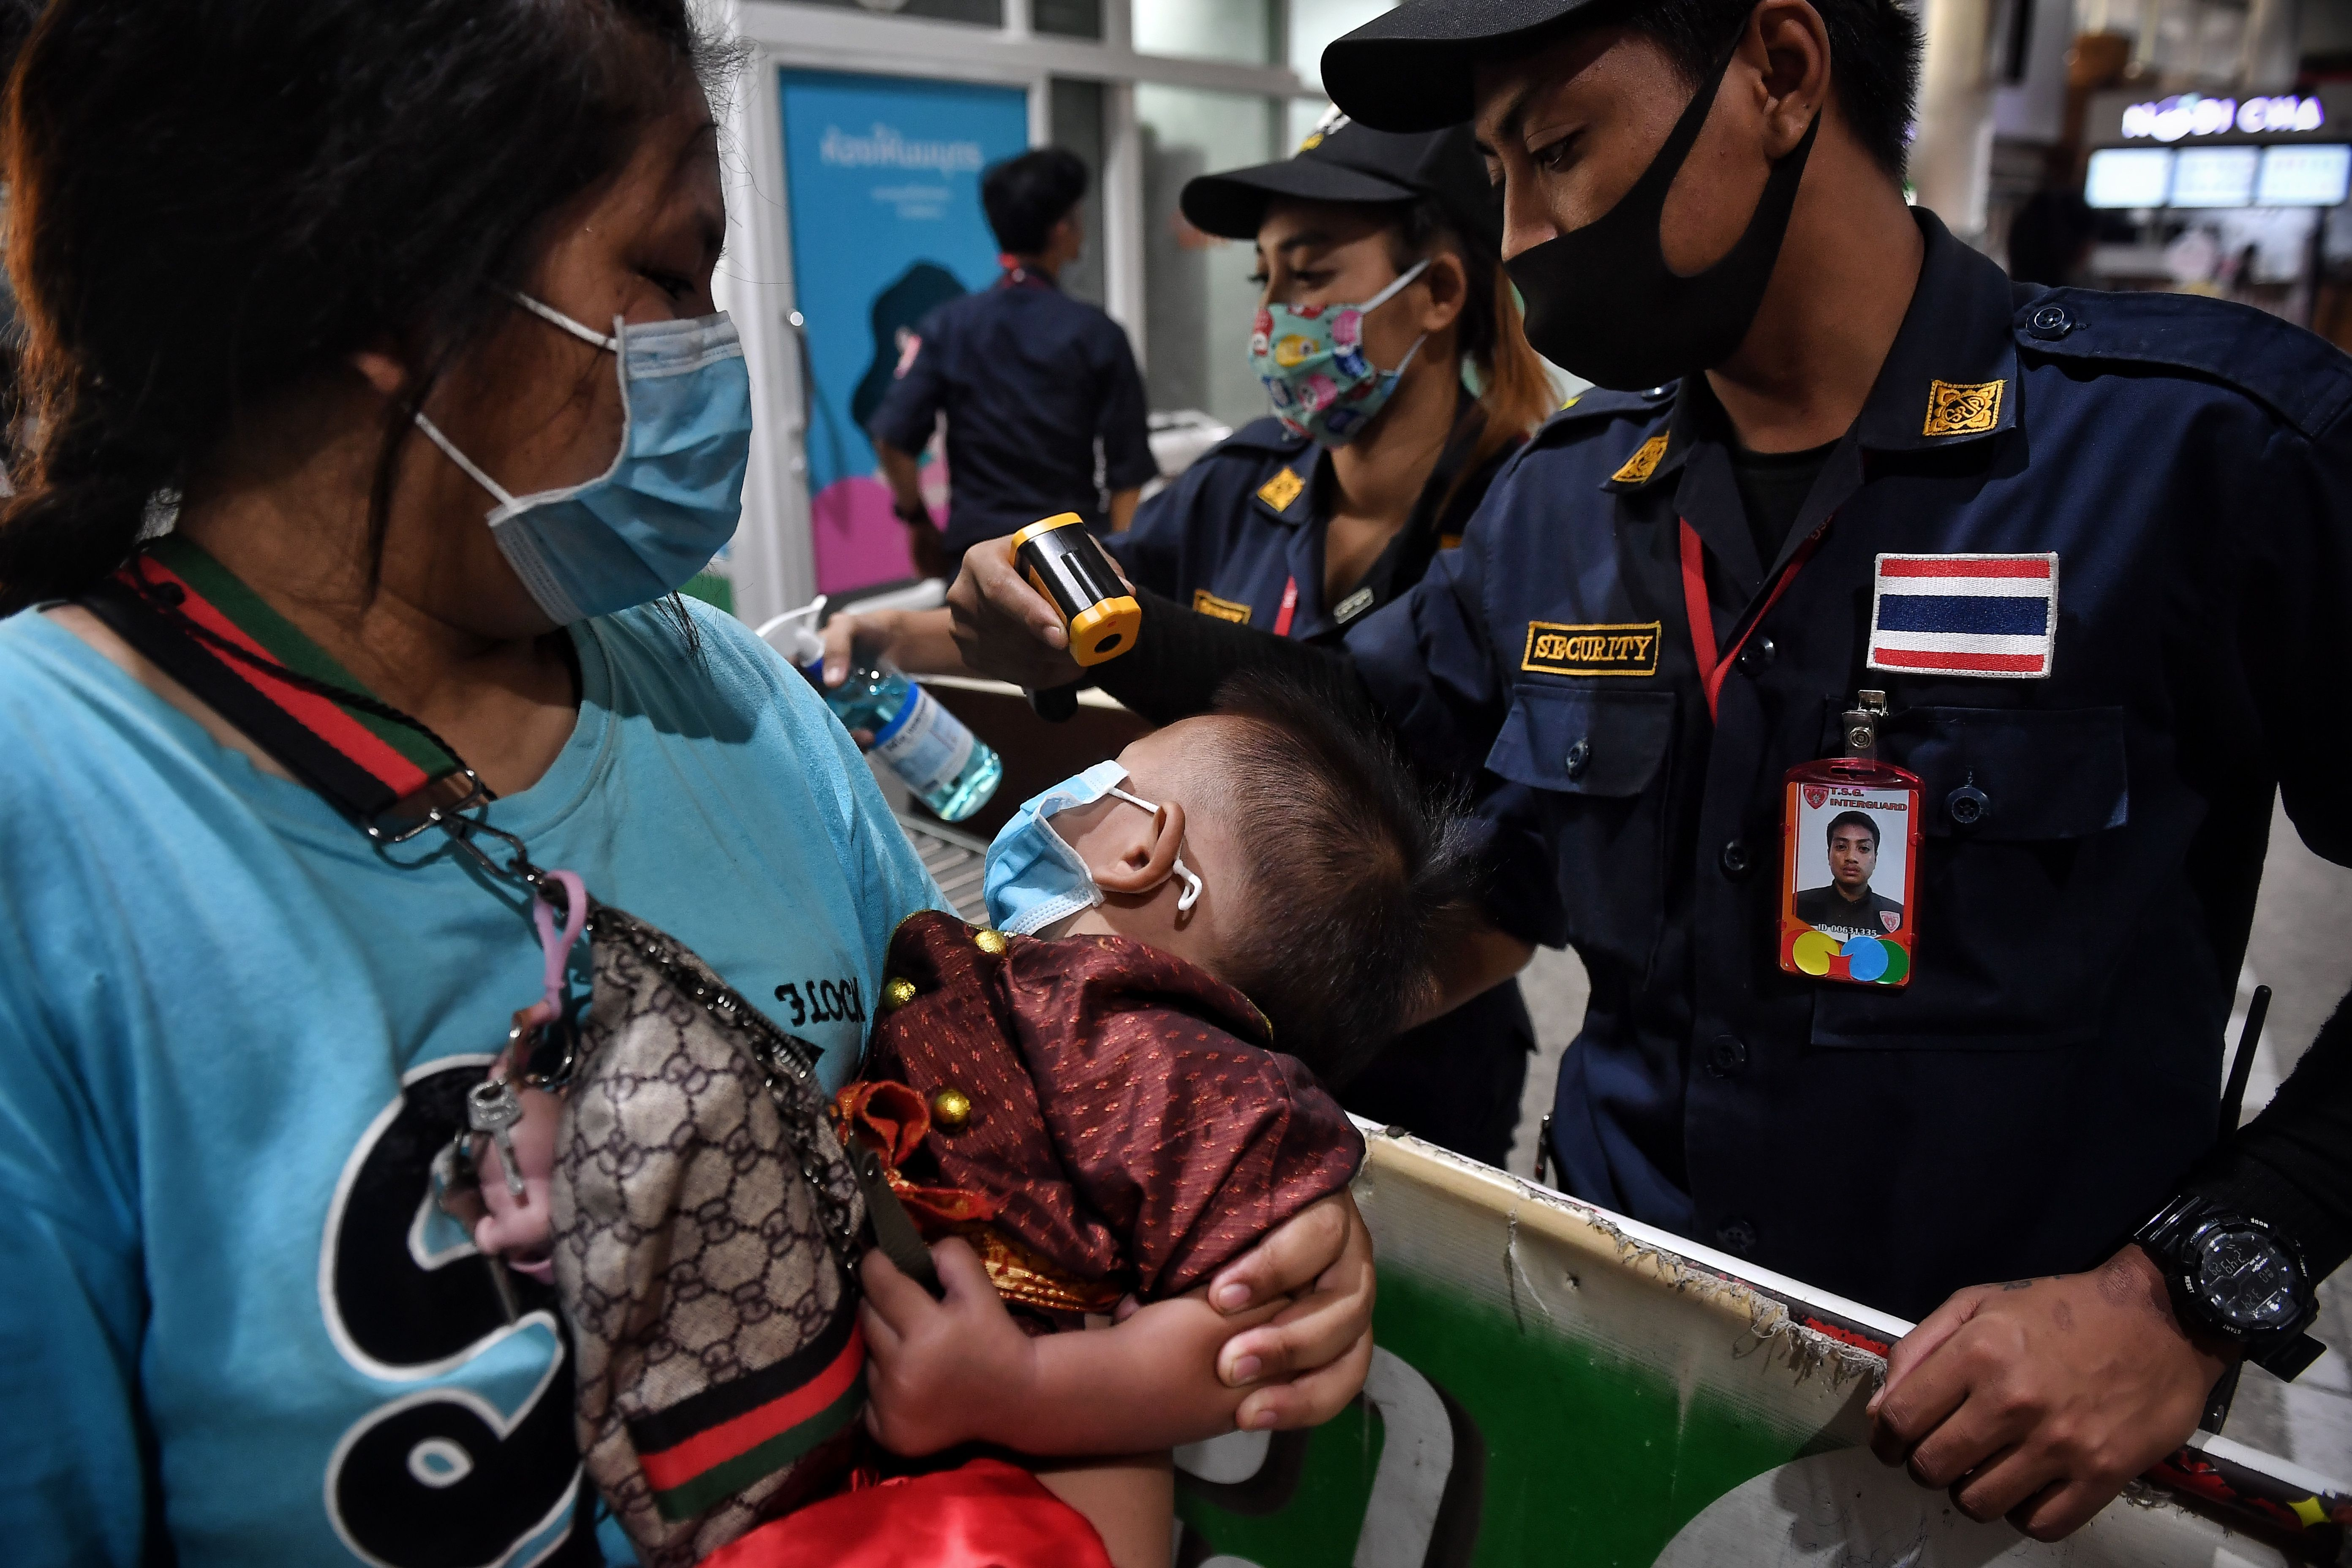 Officials check the temperature of an infant as thousands of migrant workers try to leave the Thai capital for their home provinces amid concerns over the spread of the COVID-19 coronavirus, at Mo Chit Bus Terminal in Bangkok on March 23, 2020. - (Photo by LILLIAN SUWANRUMPHA/AFP via Getty Images)